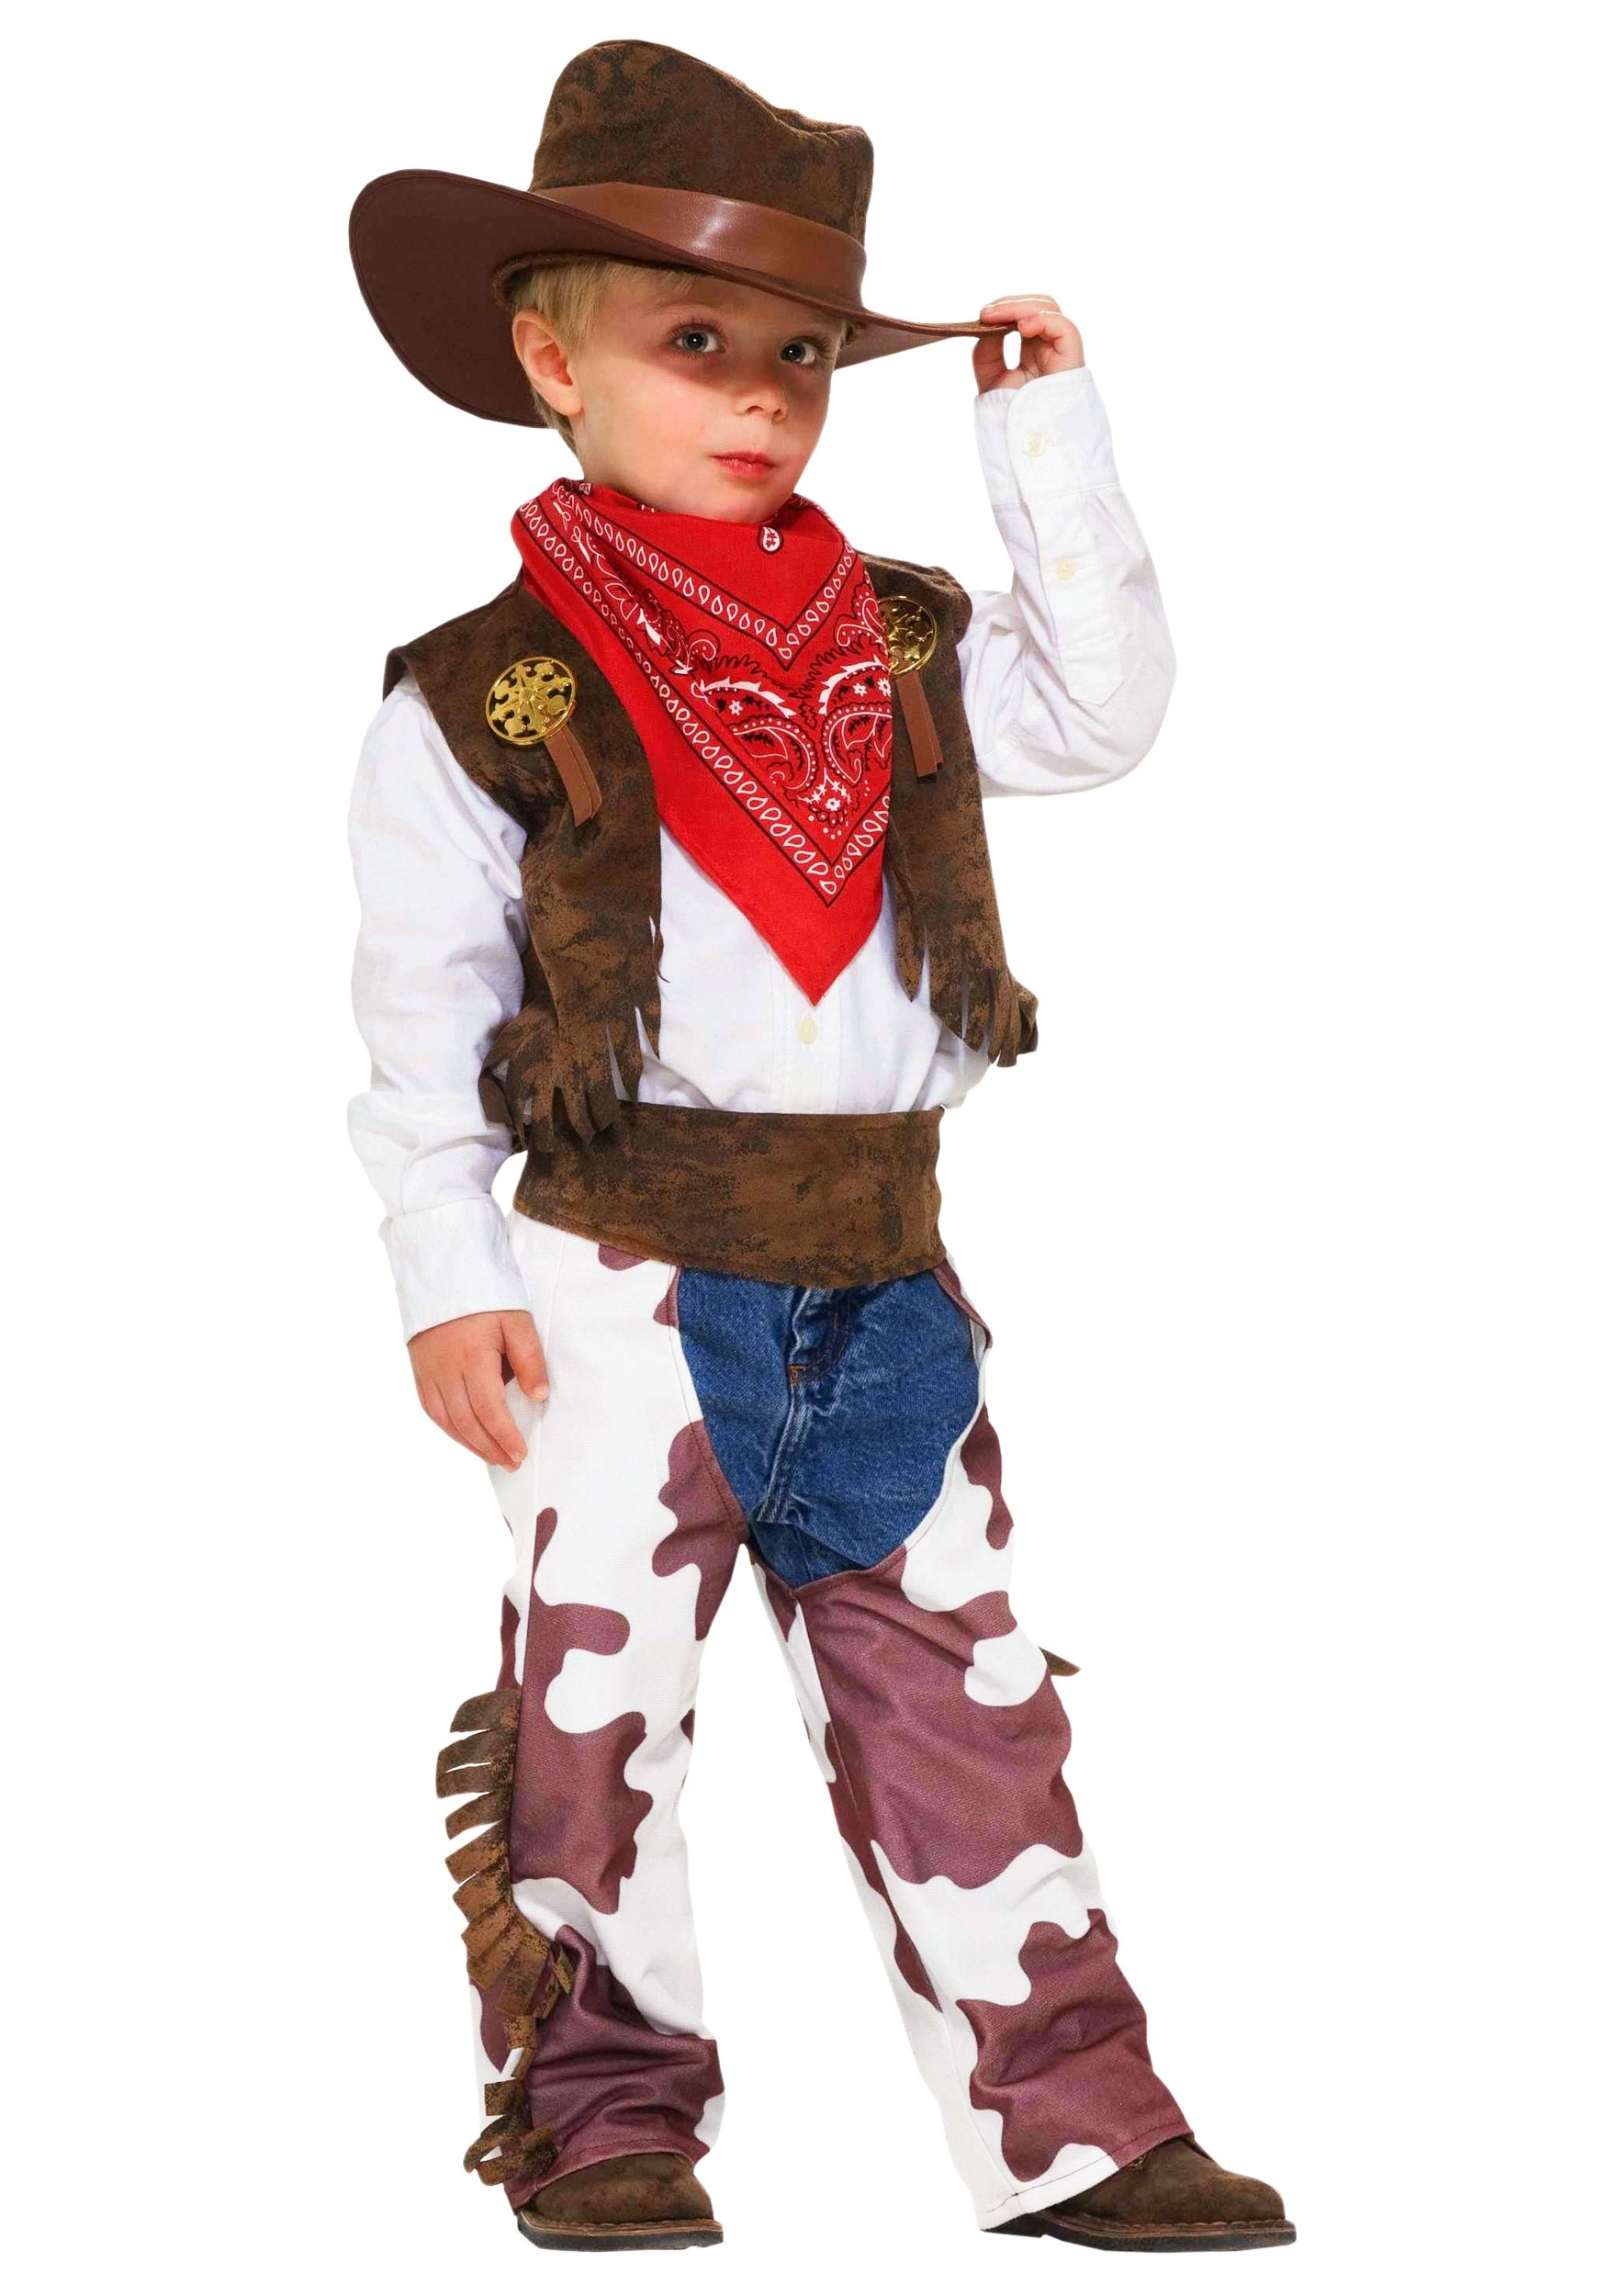 Cowboy Boys Costume for Toddlers | Toddler Western Halloween Costume